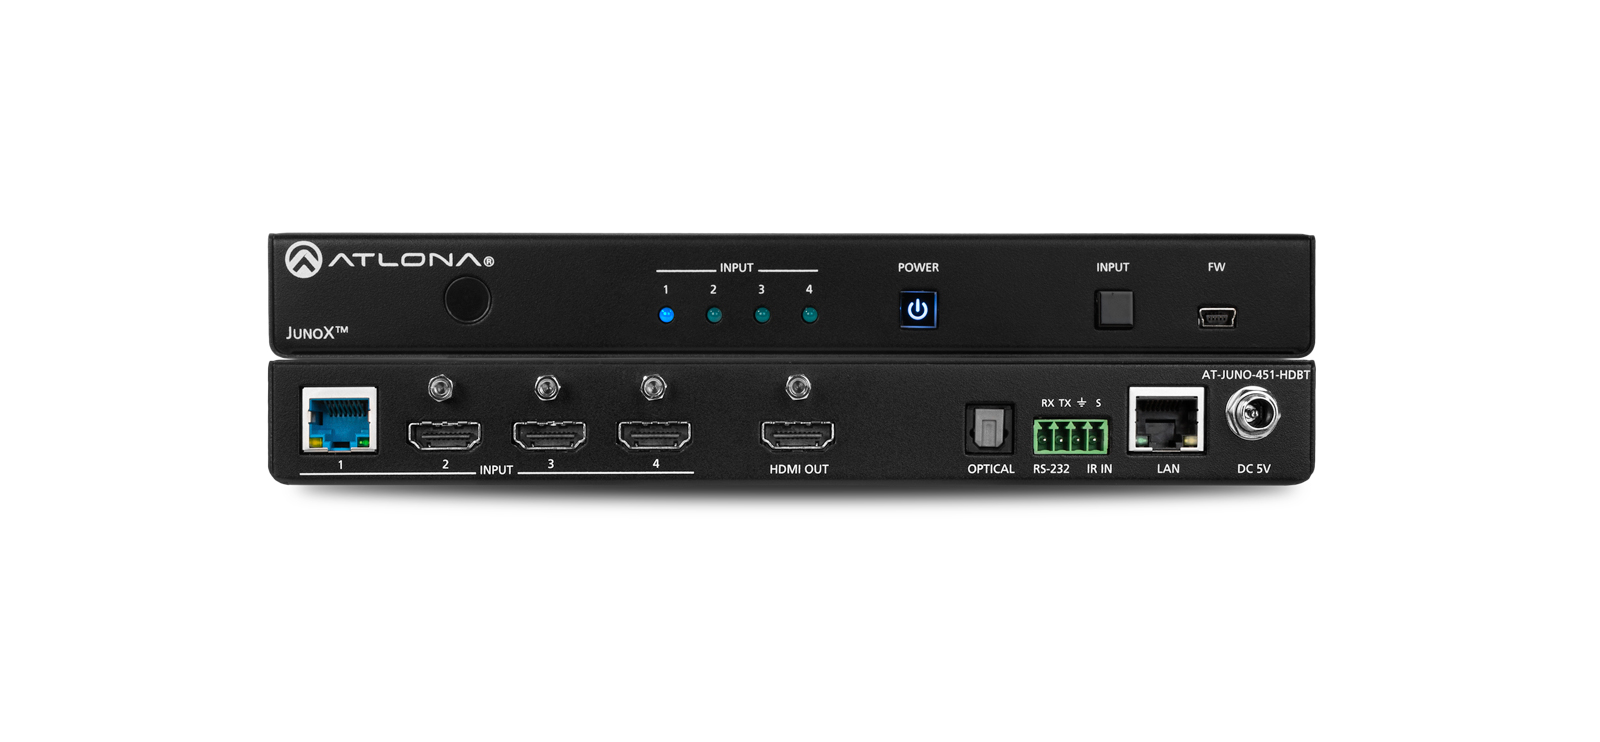 Atlona AT-JUNO-451-HDBT - HDBaseT/HDMI Switcher 4 X 1